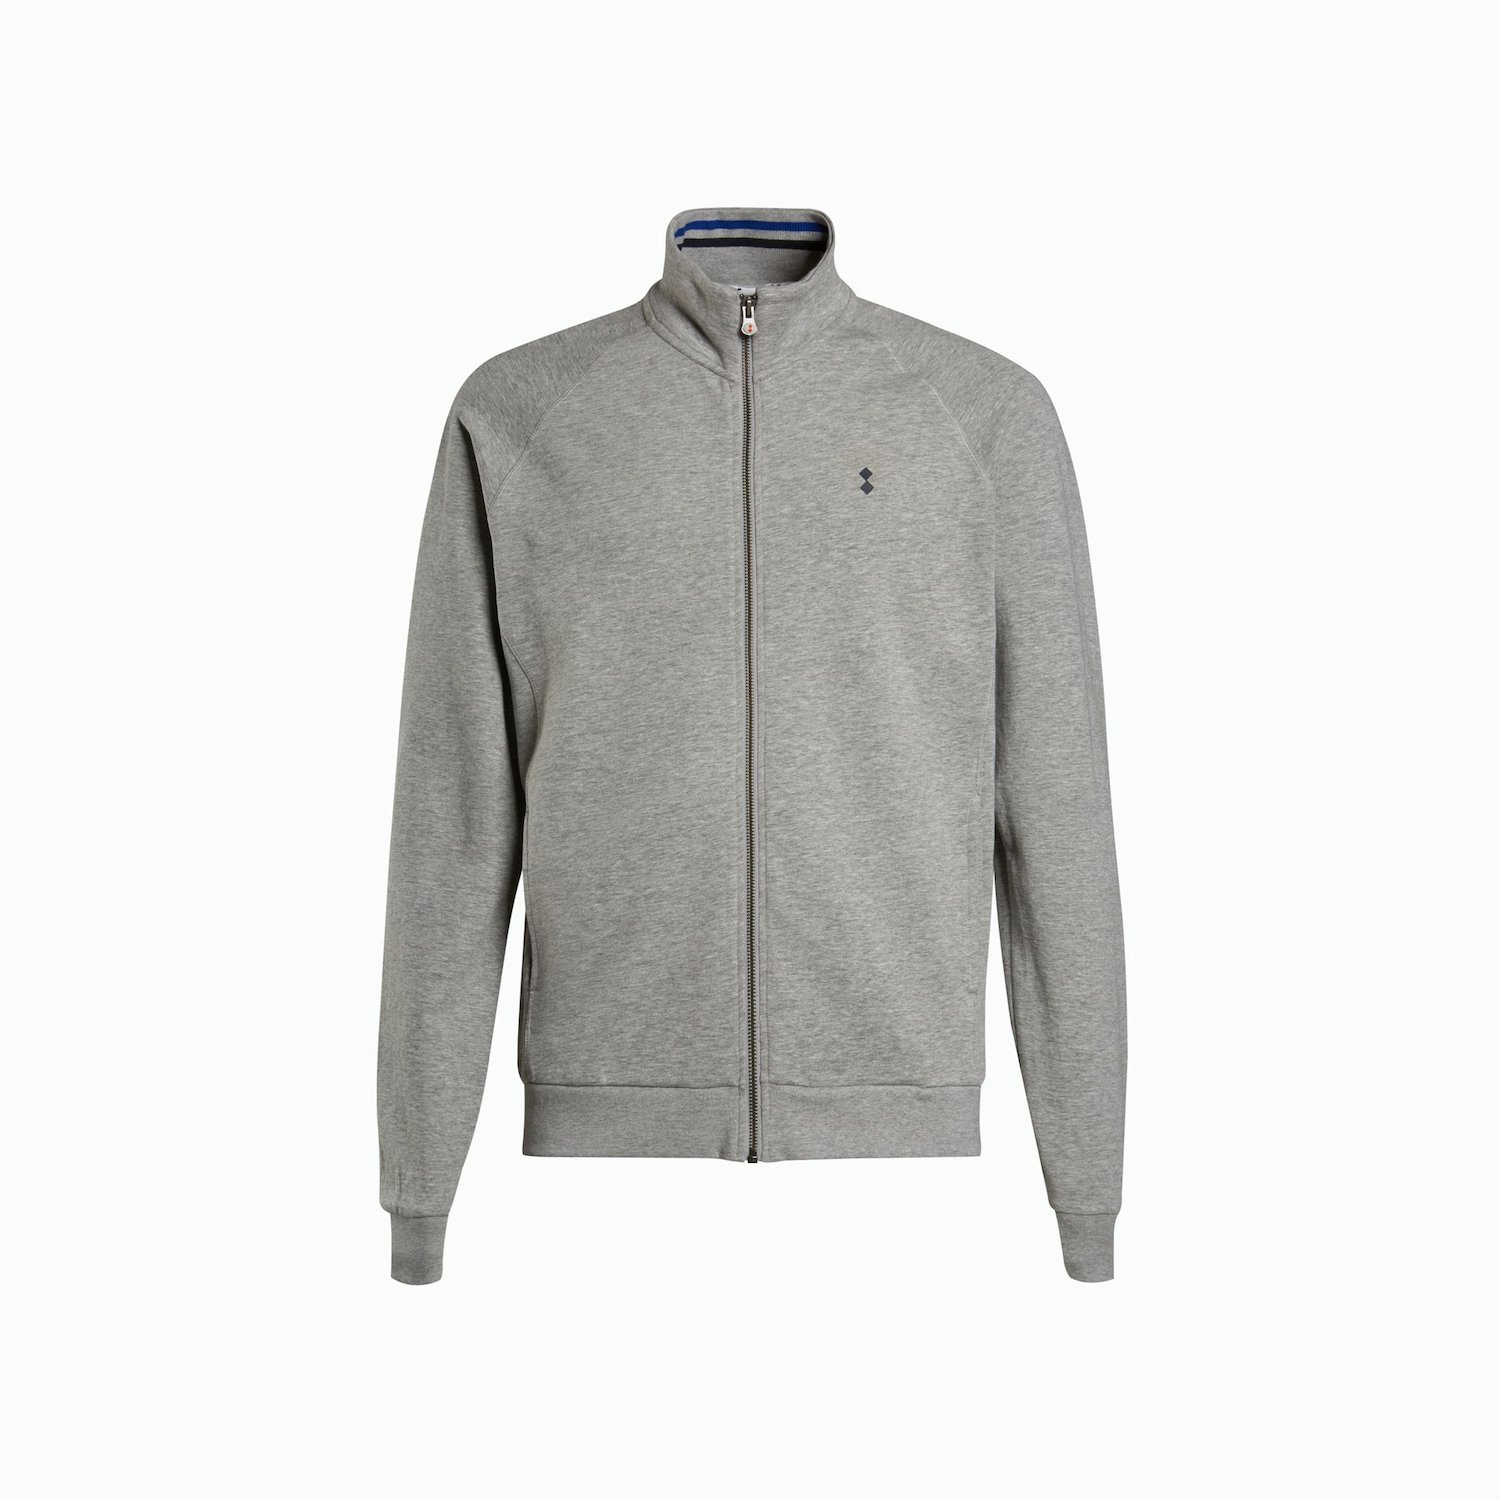 Sweat-shirt A37 - Light Grey Melange